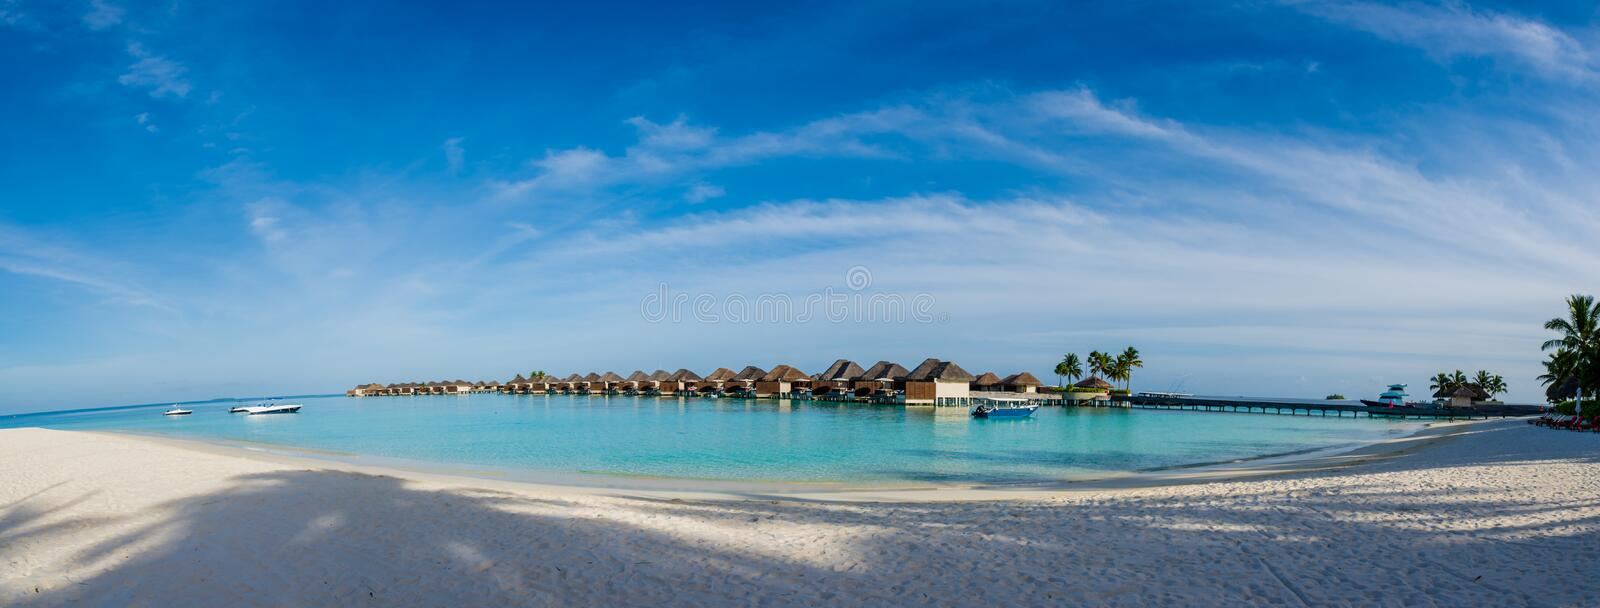 Amazing beautiful tropical beach panorama of water bungalos near the ocean with palm trees under the blue sky at Maldives stock image